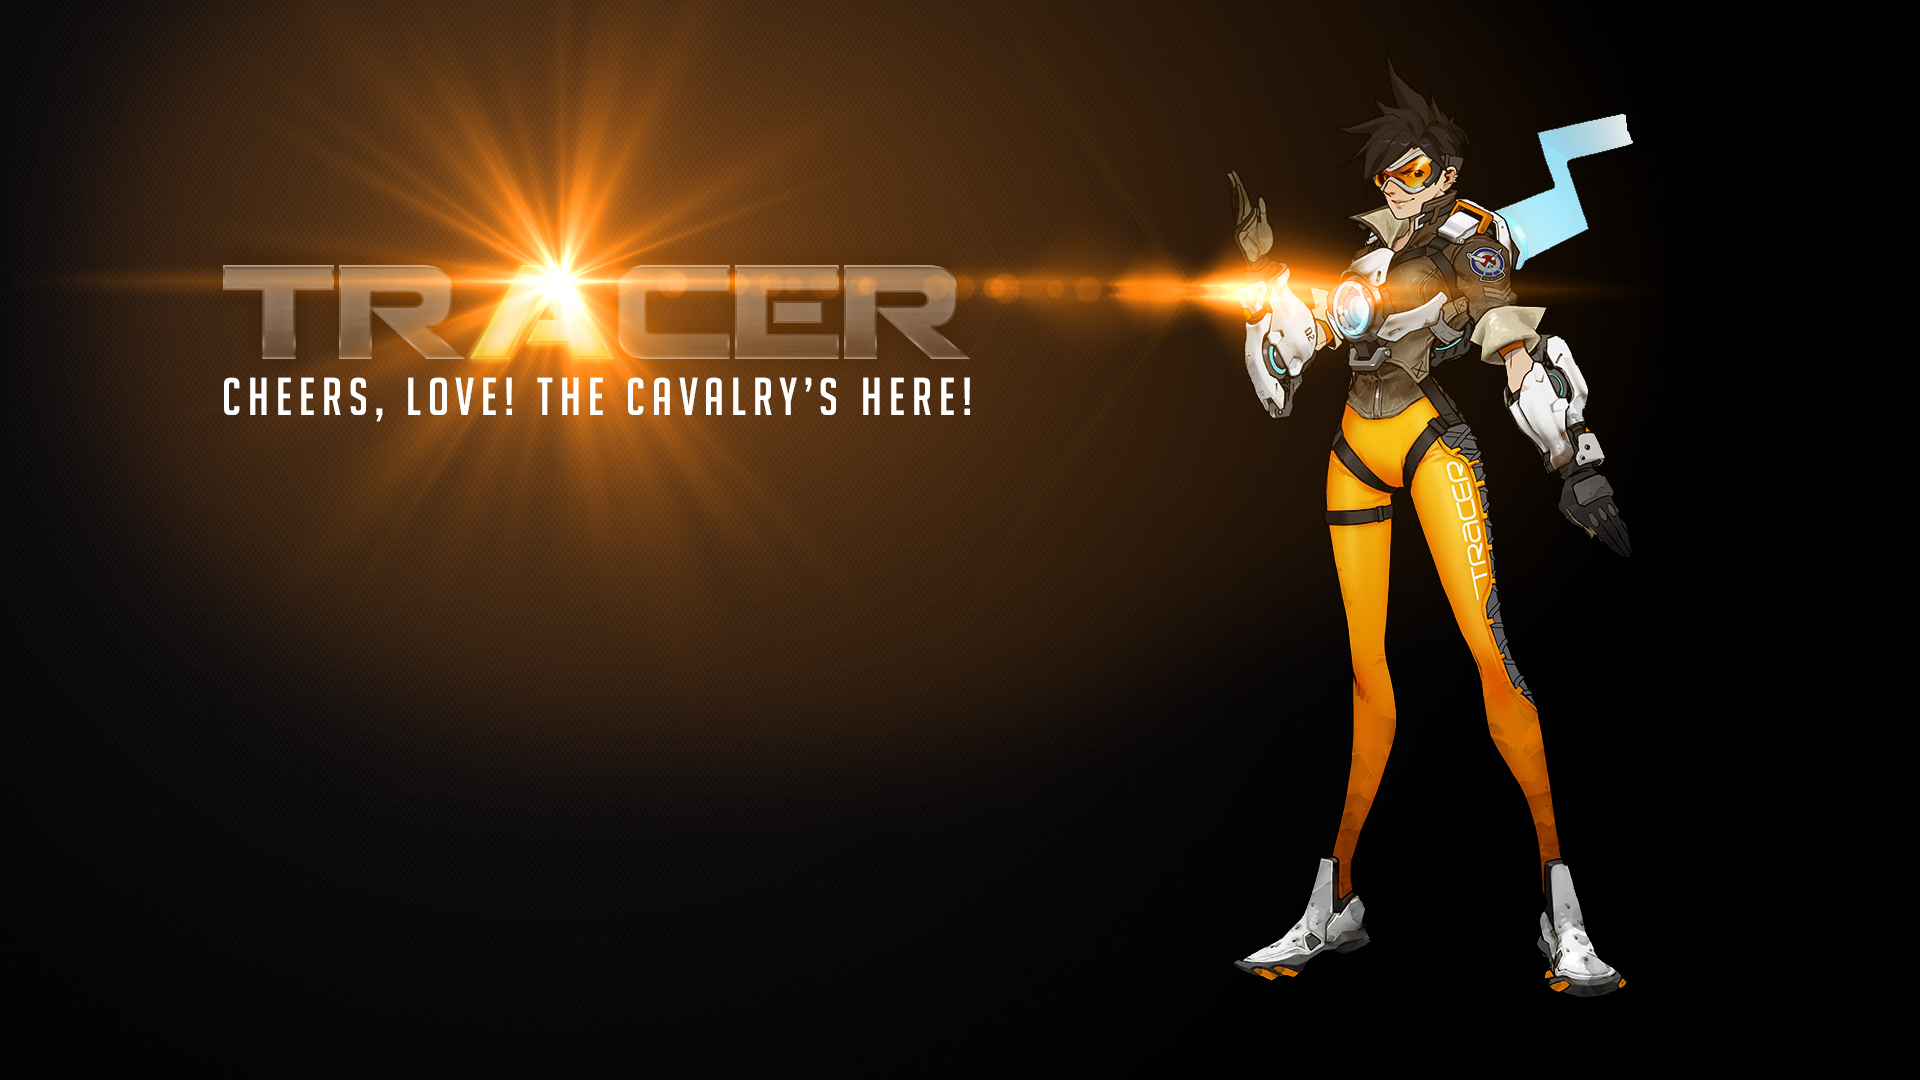 overwatch agent tracer wallpapers - photo #33